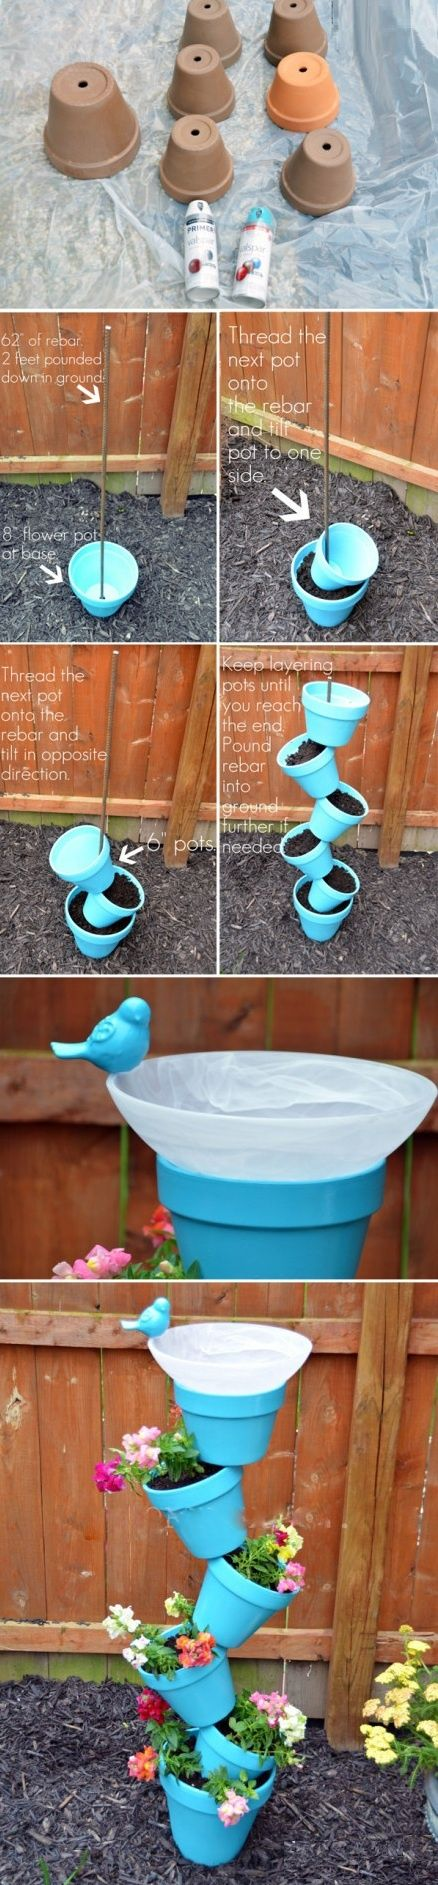 diy birdfeeder planter. So cute!